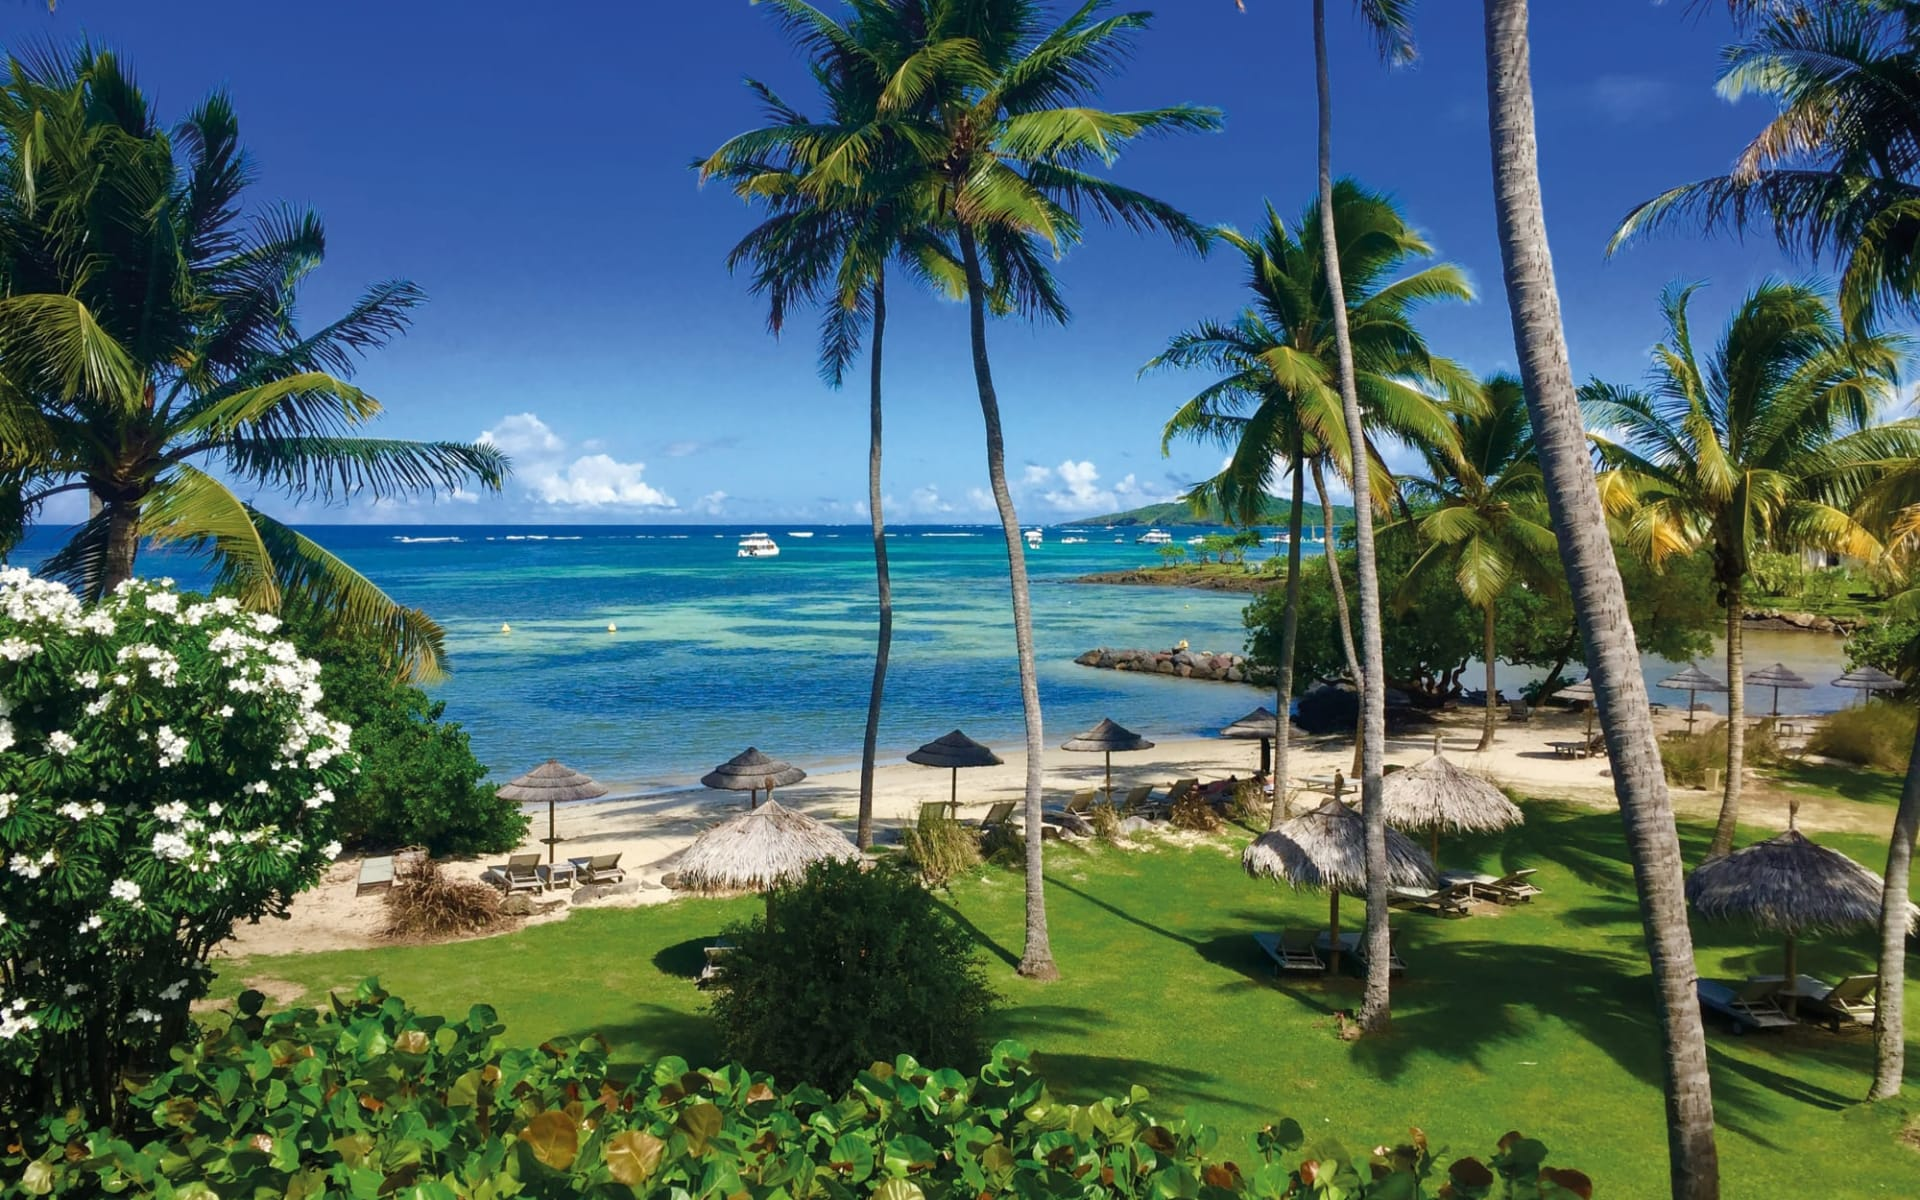 Le Cap Est Lagoon Resort & Spa in La Prairie:  Martinique_Le Cap Est LAgoon Resort & Spa_Beach